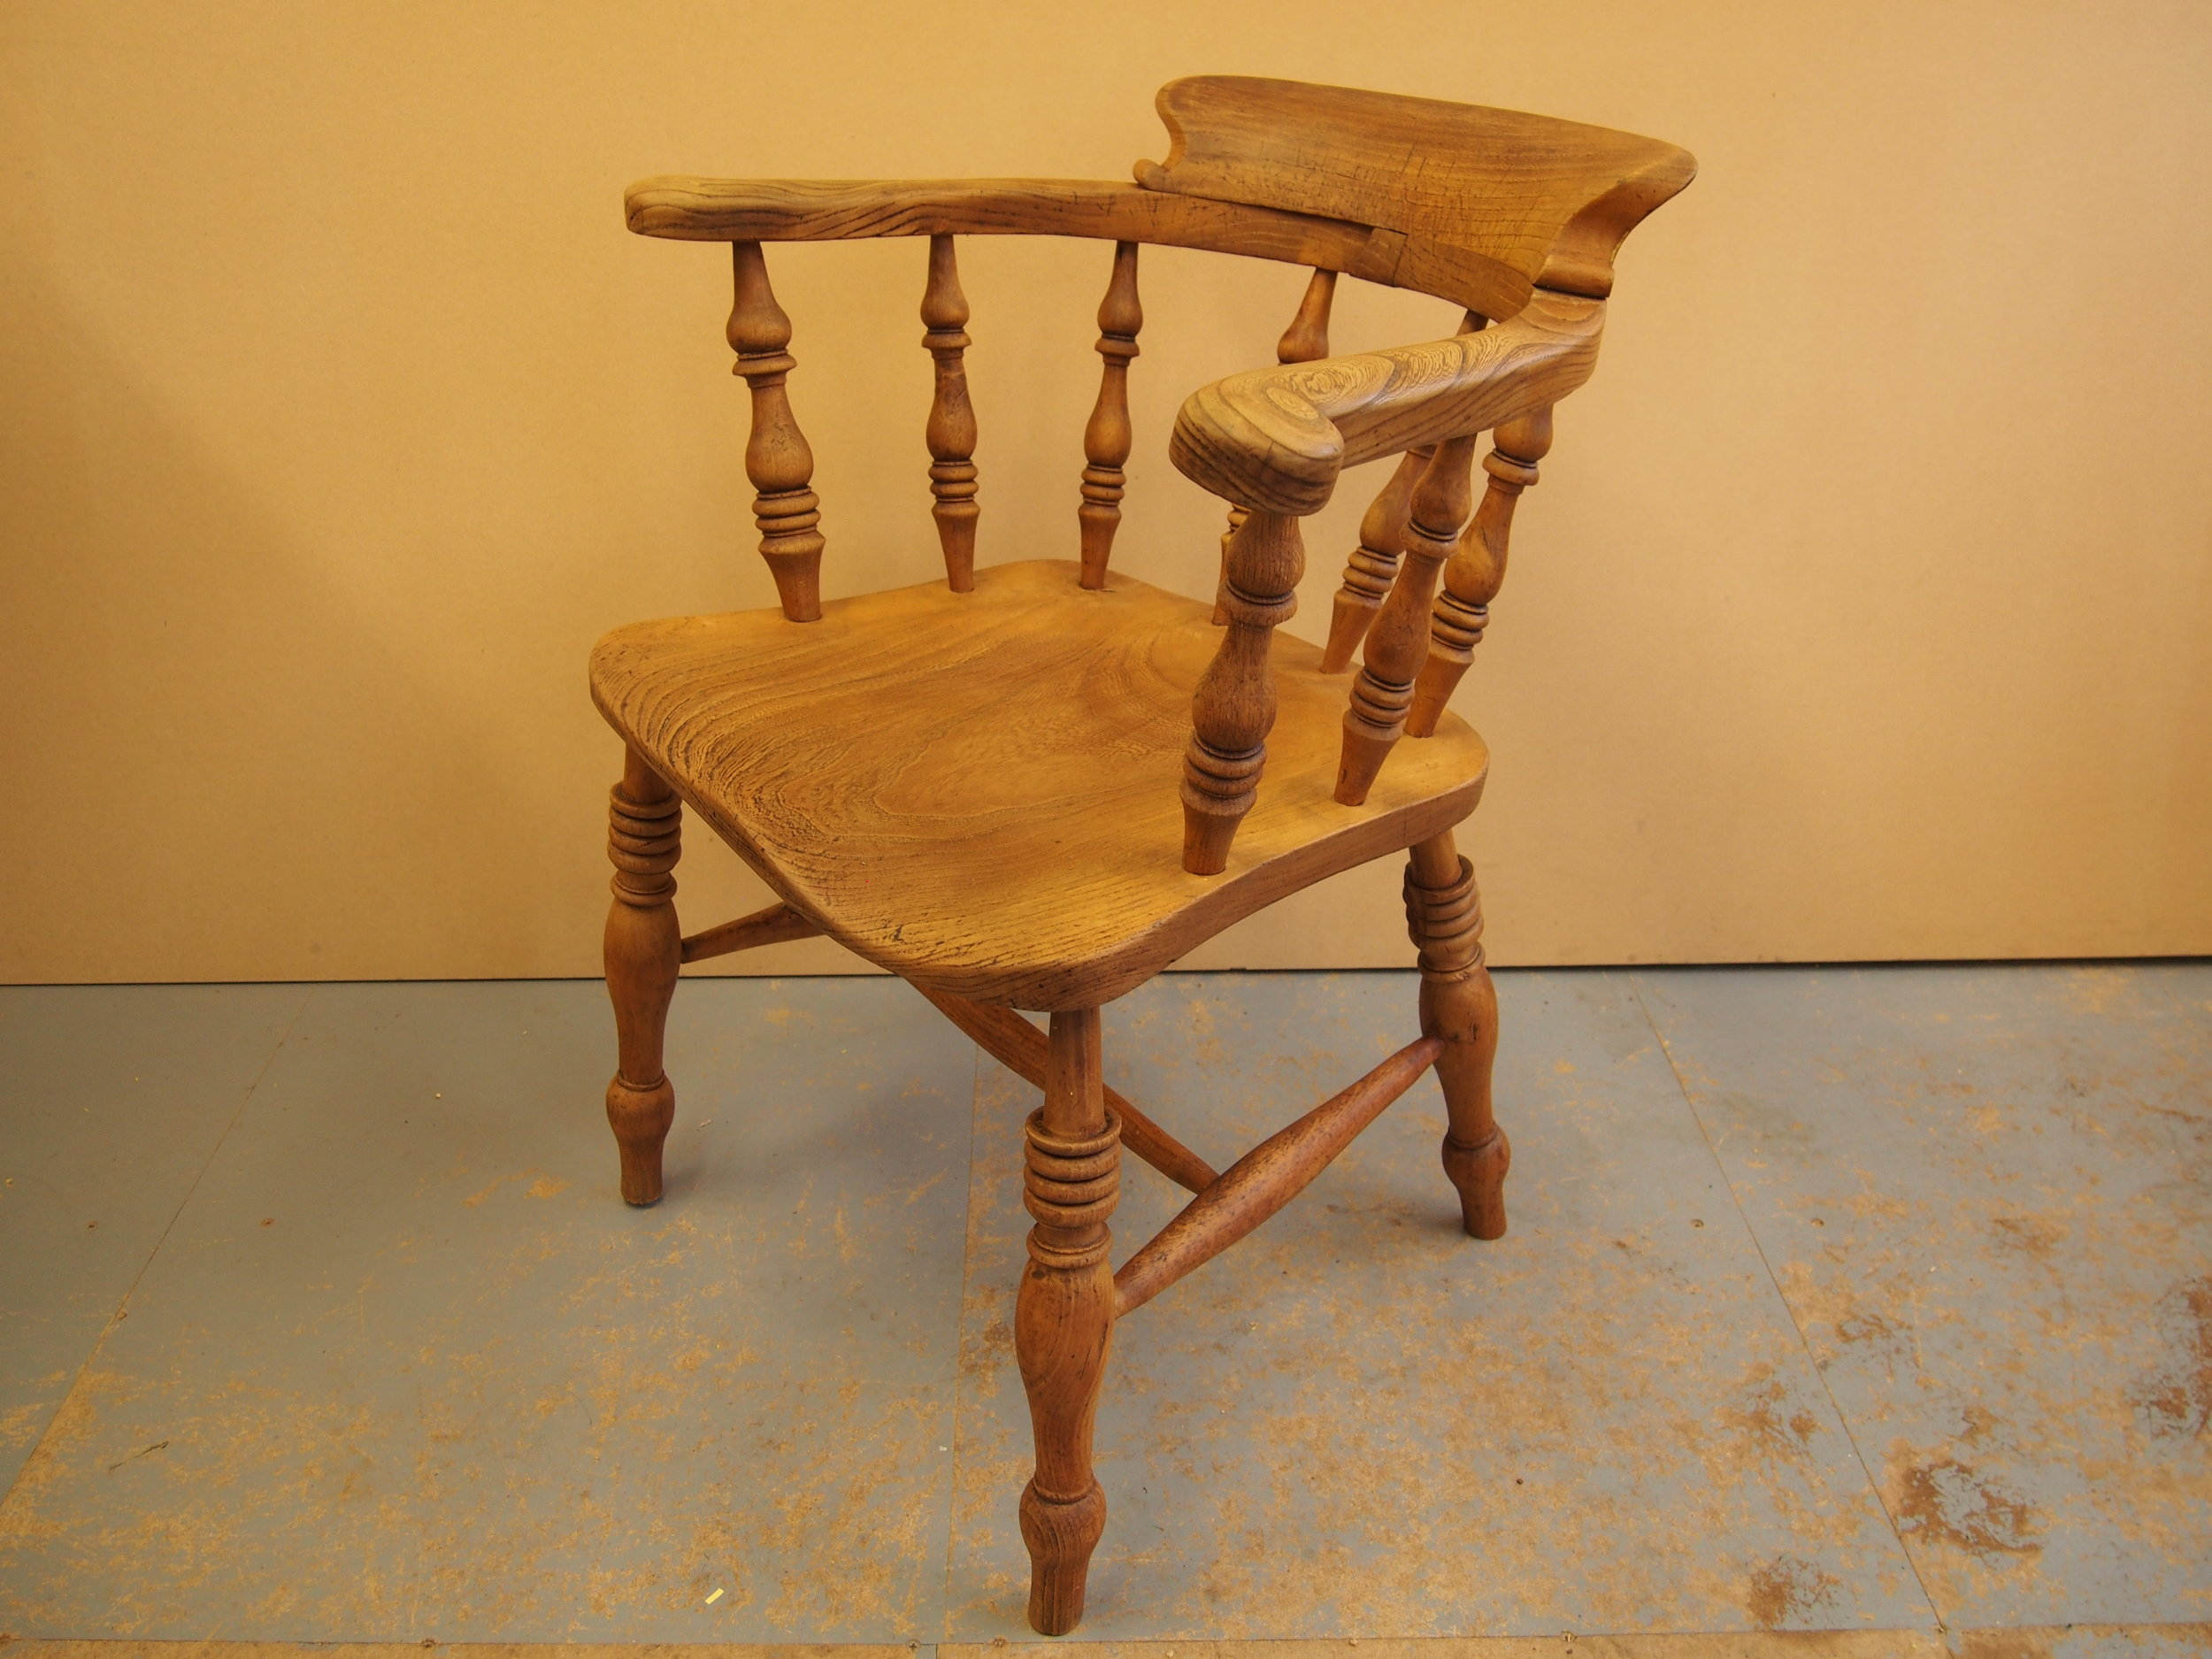 This sentimental Captain's Chair was commissioned to be restored and repaired to the given specification. The chair was to be stripped of its original finish and to have a light brown finish applied. One of the legs had fallen off that needed to be re-glued into position.  Several existing thick layers of the original finish were stripped back and it was evident that all of the legs and lower rails were loose, therefore each of these component's needed to be re-positioned and glued. The entire chair was lightly de-nibbed in order to make each surface smooth in preparation for the light brown varnish to be applied. A recommended final coat of wax was applied to further protect the surface from wear and discolouration.